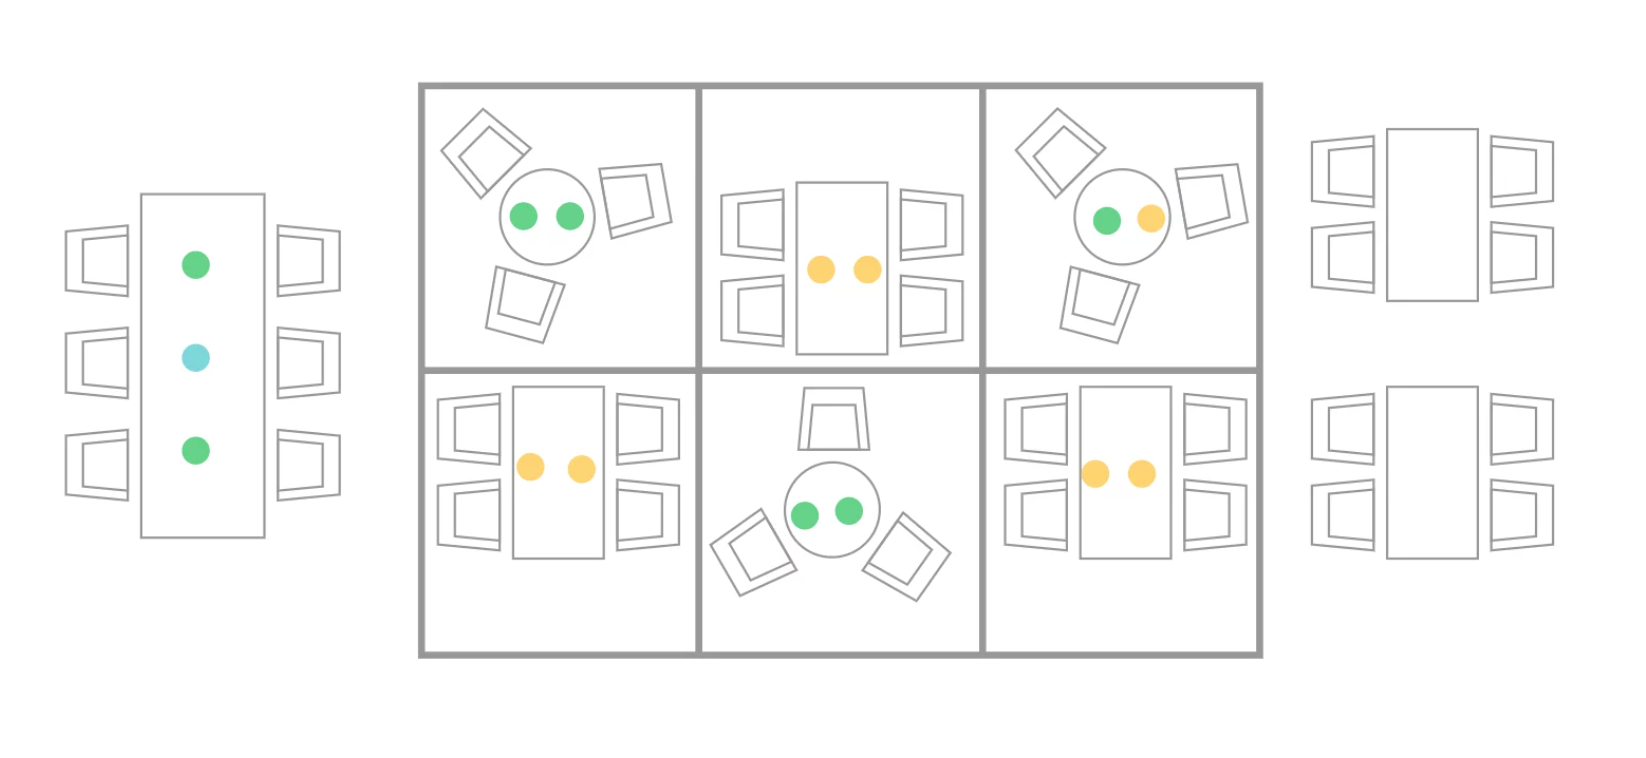 Floor plan with yellow and green spots to indicate desks in use or to clean